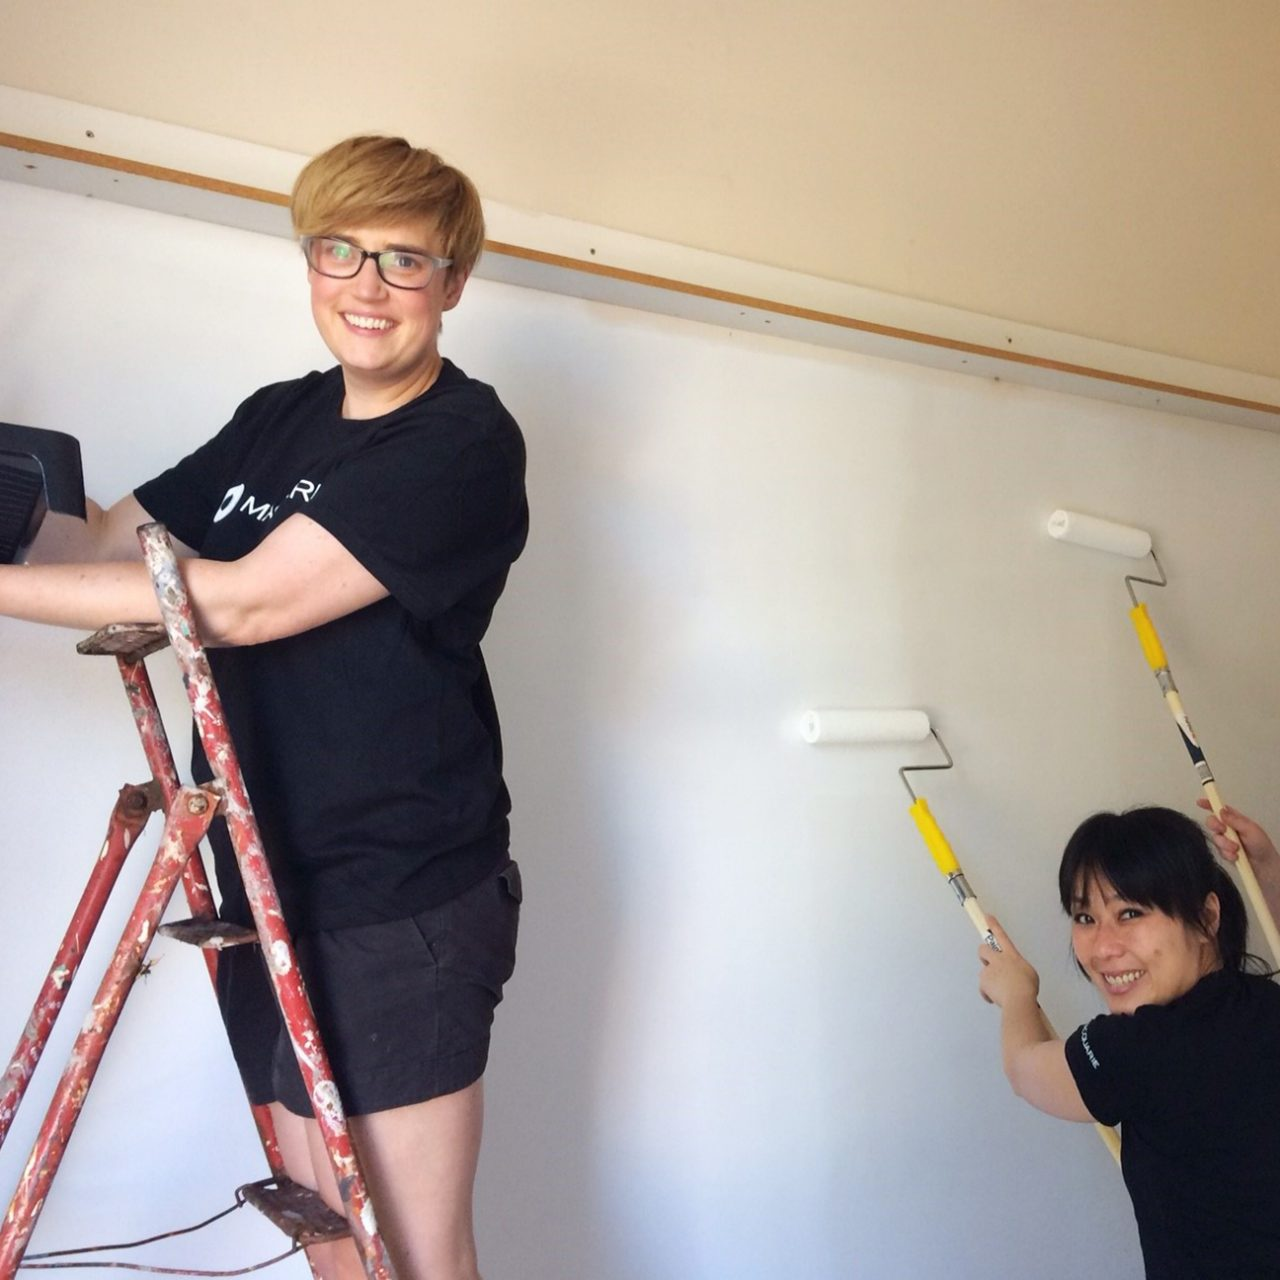 Melbourne staff spent two afternoons painting a room at the Raise Foundation's Melbourne office